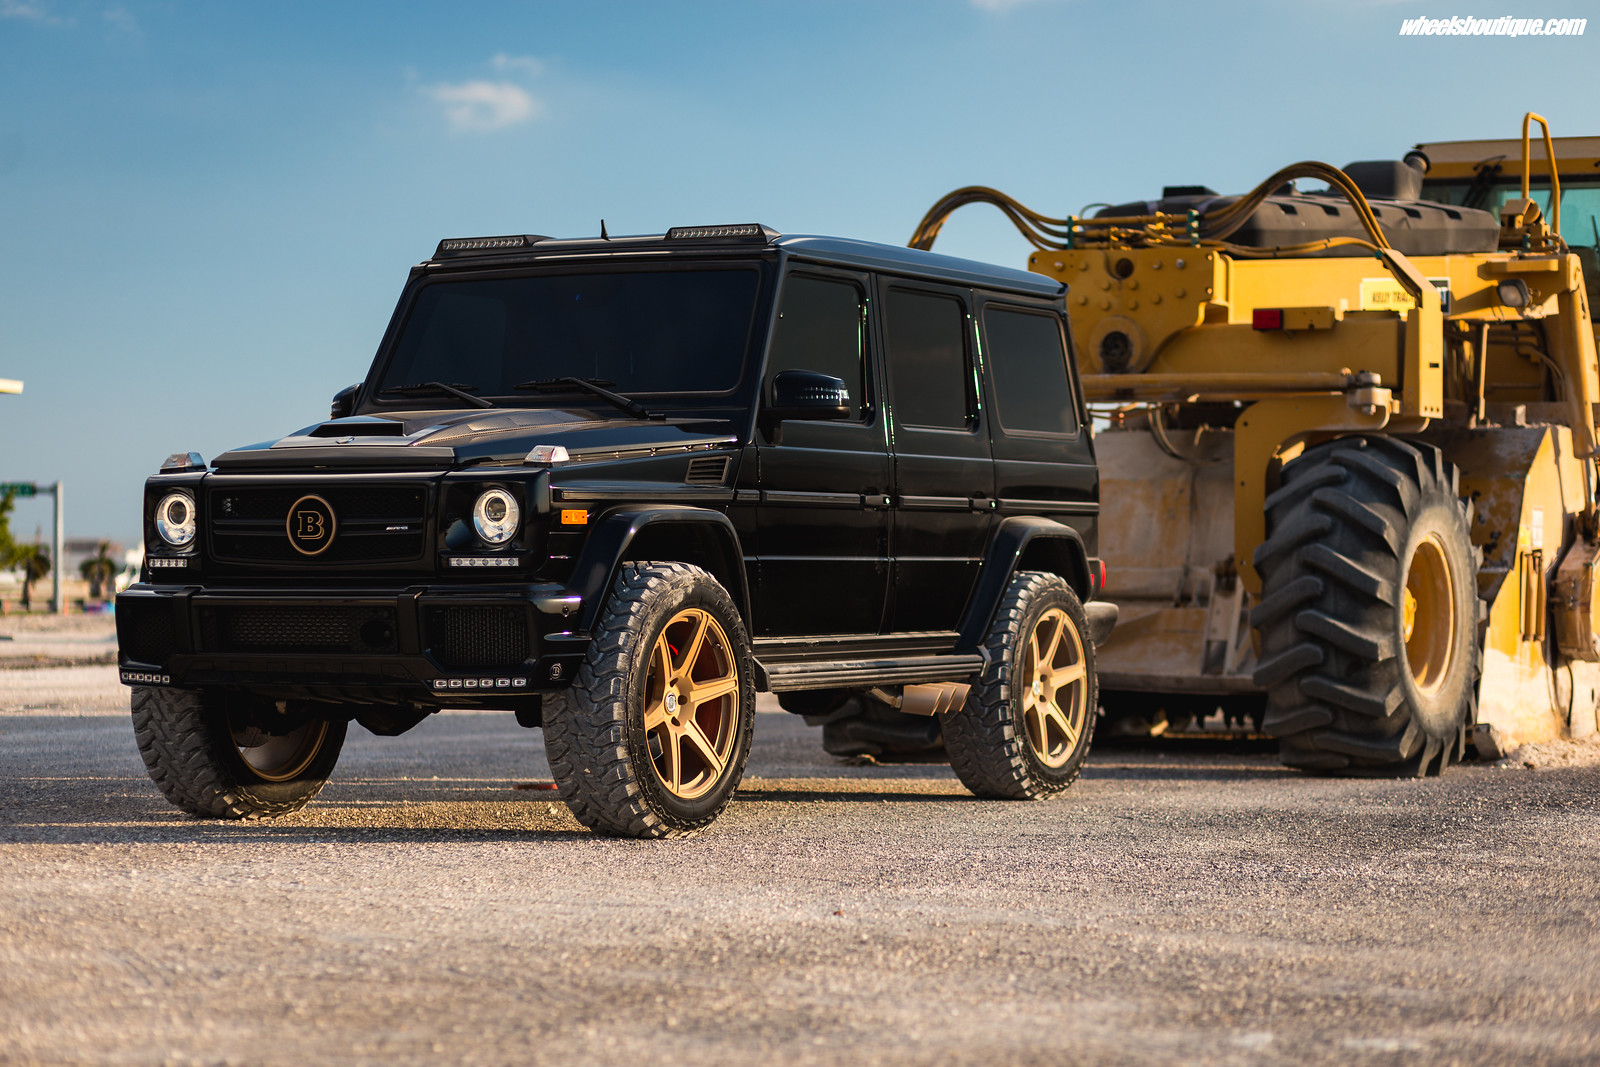 63 Power Wagon >> The Brabus Brawler - Another Lifted Mercedes G63 by TeamWB - 6SpeedOnline - Porsche Forum and ...